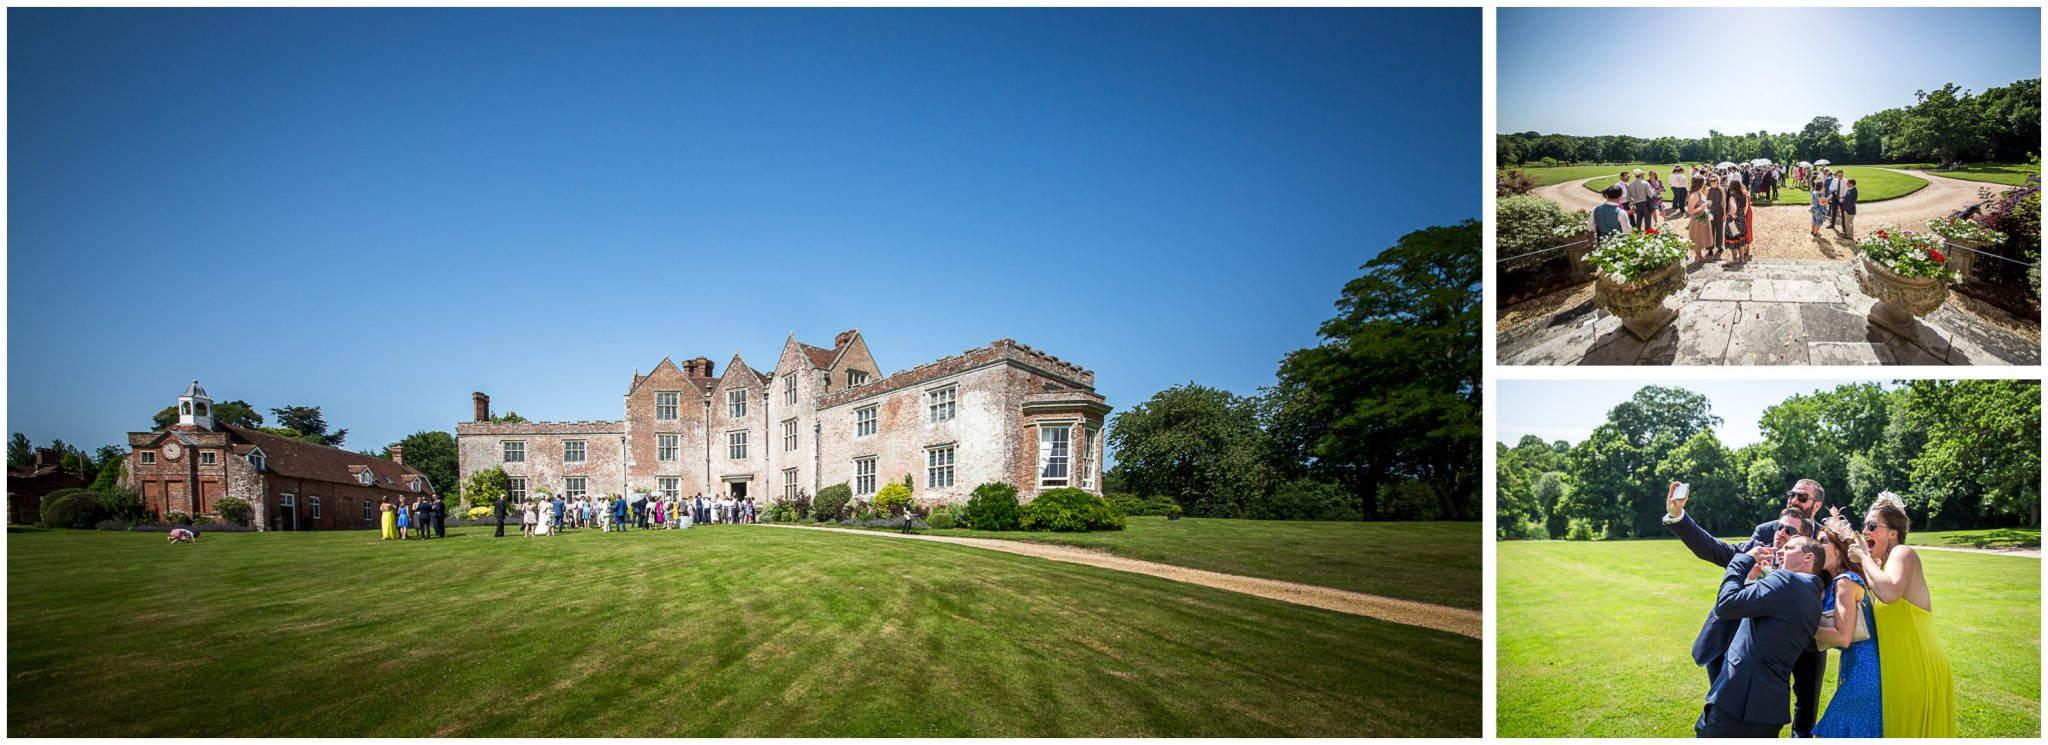 Wedding guests enjoying the Newhouse Estate wedding venue in the Summer sunshine